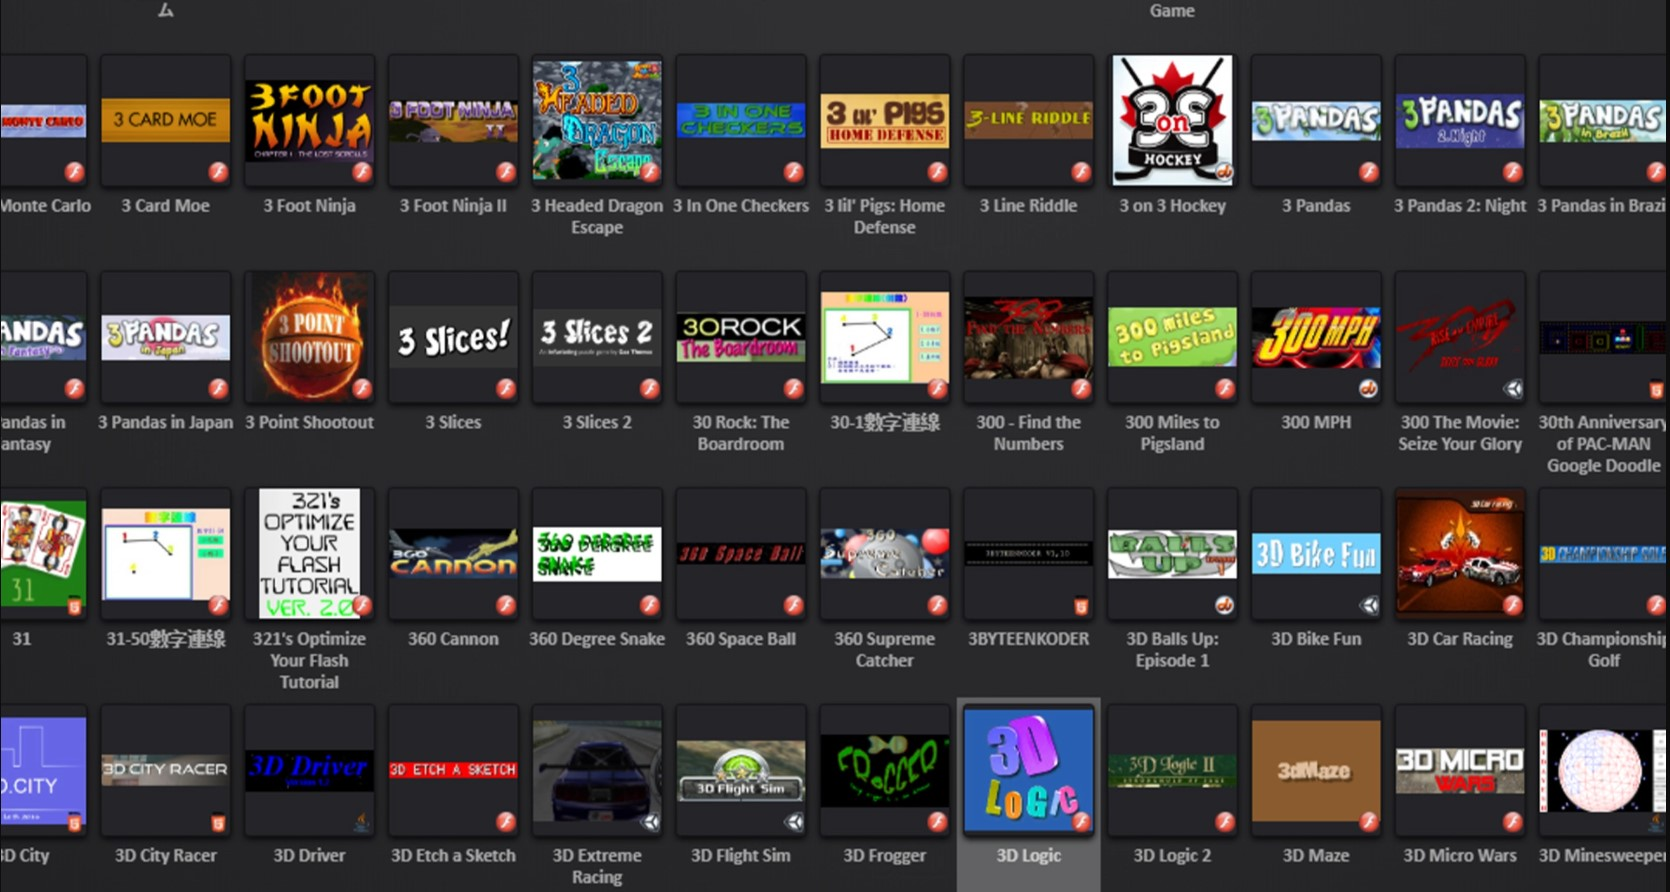 Thumbnails of PC games